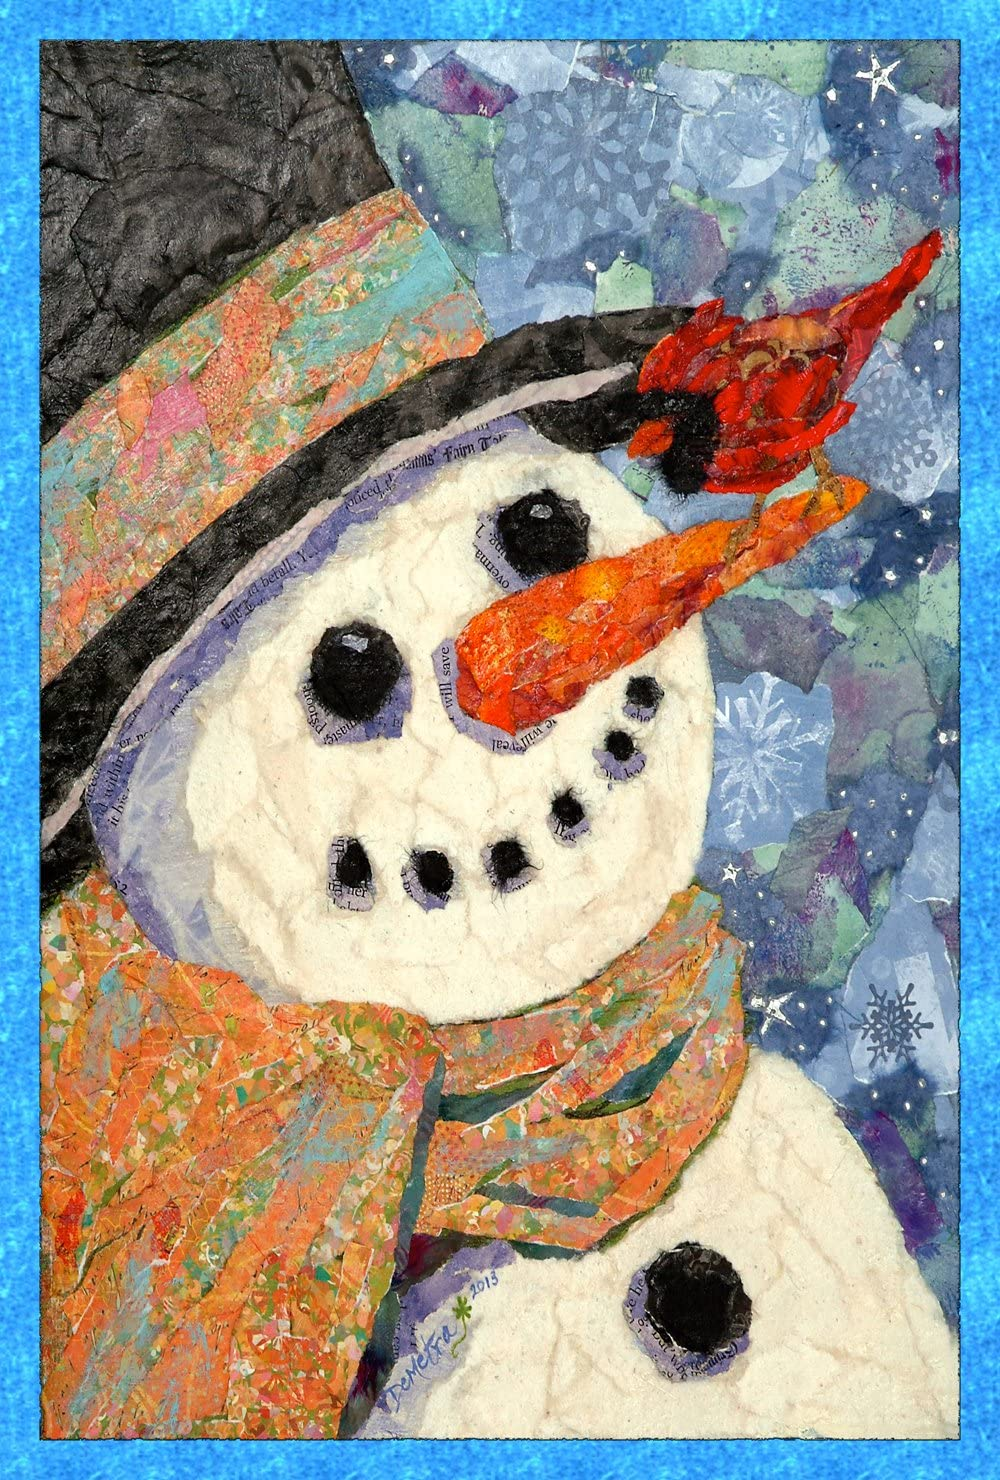 Toland Home Garden 109700 28 x 40 Inch Decorative, Snowman and Cardinal, House Flag